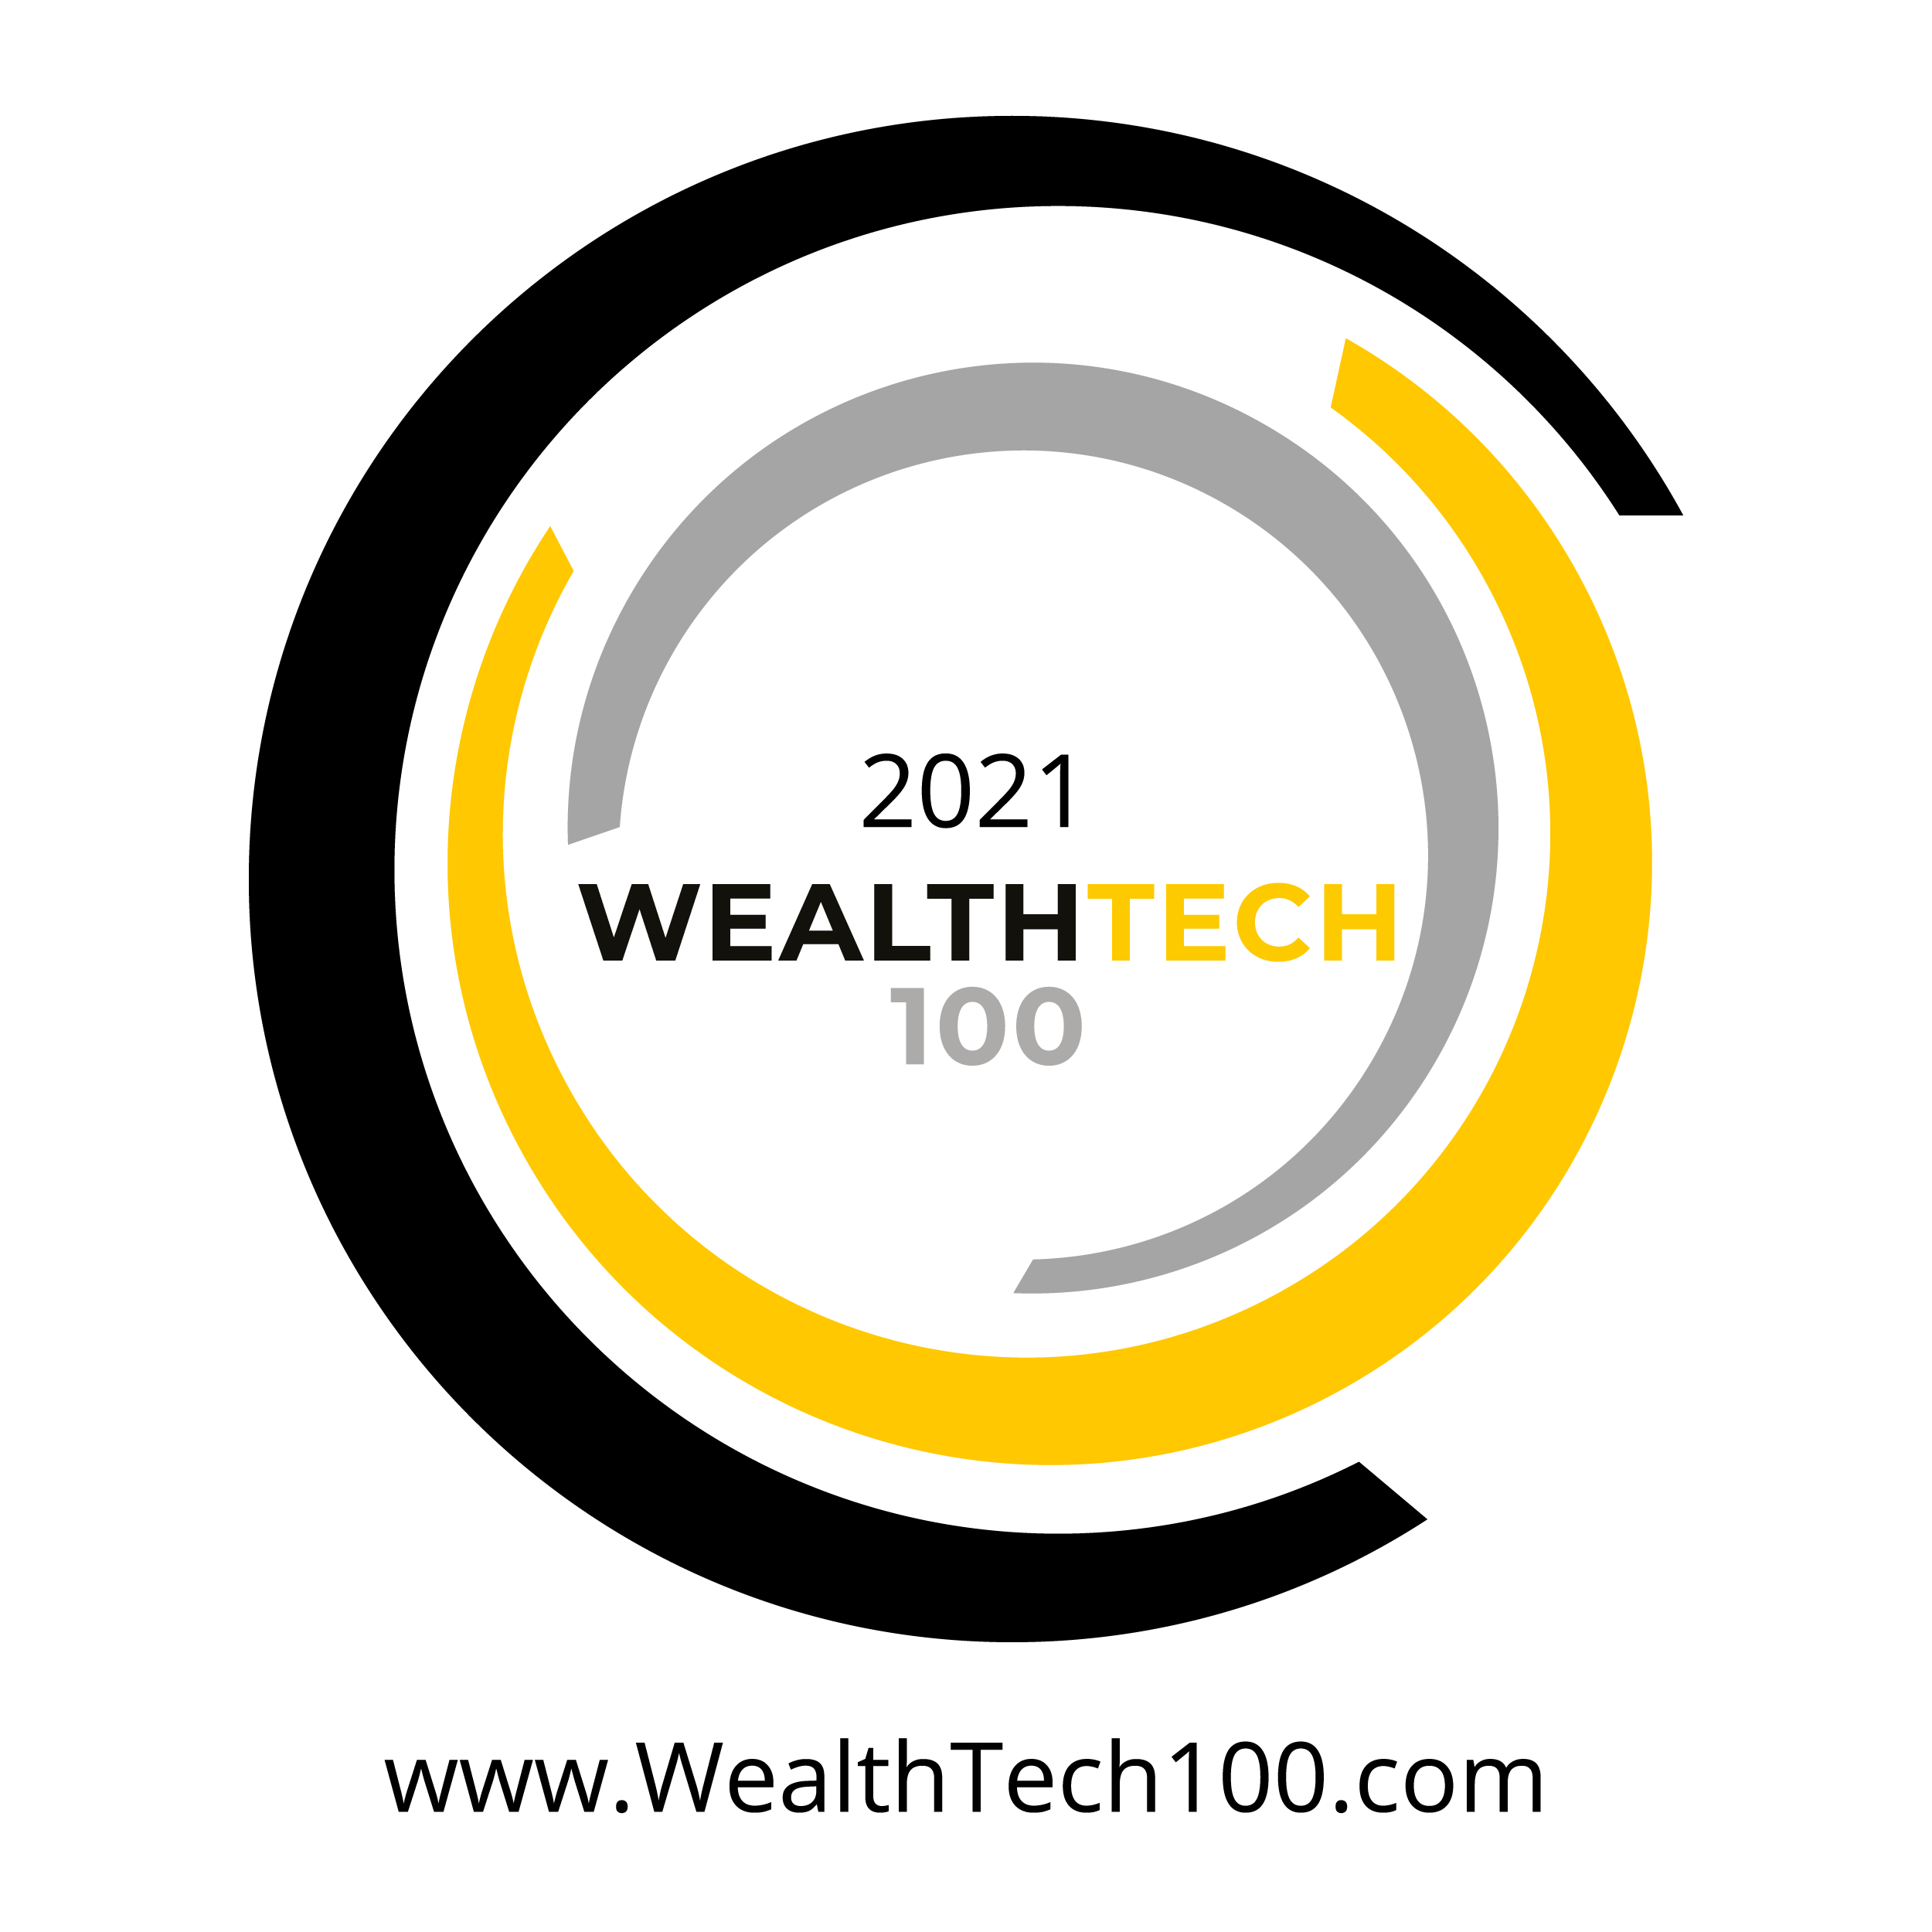 Wealthtech 100: Regarded as one of the world's most innovative WealthTech companies